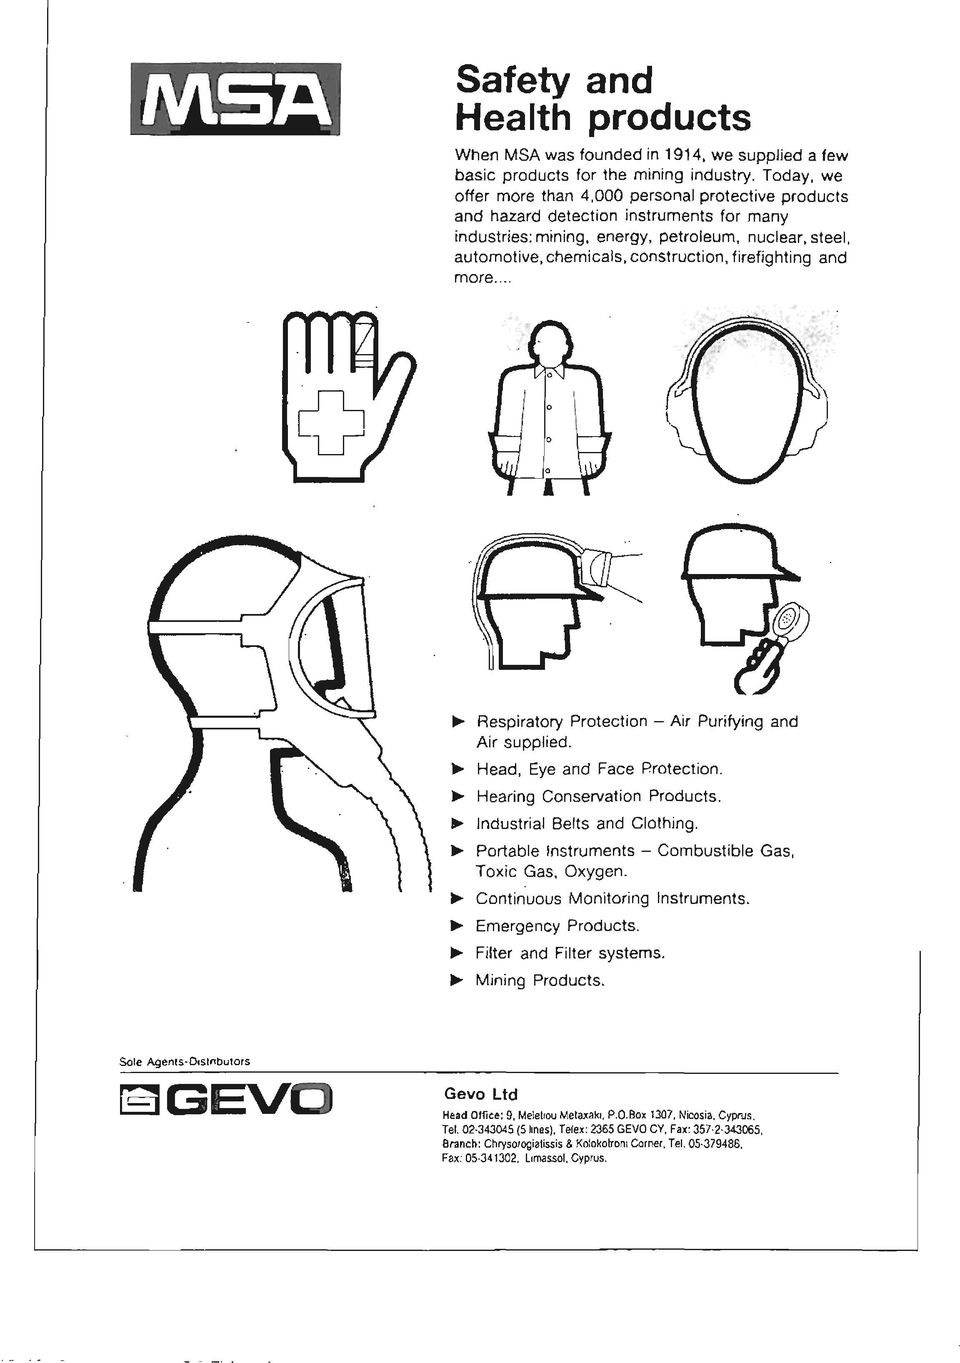 firefighting and more... ο ο JI!J ~; ~ RespIratory Protection - ΑίΓ Purifying and ΑίΓ supplied. ~ Head, Eye and Face Protection. ~ Hearing ConservatIon Products. ~ Industrial Belts and Clothing.